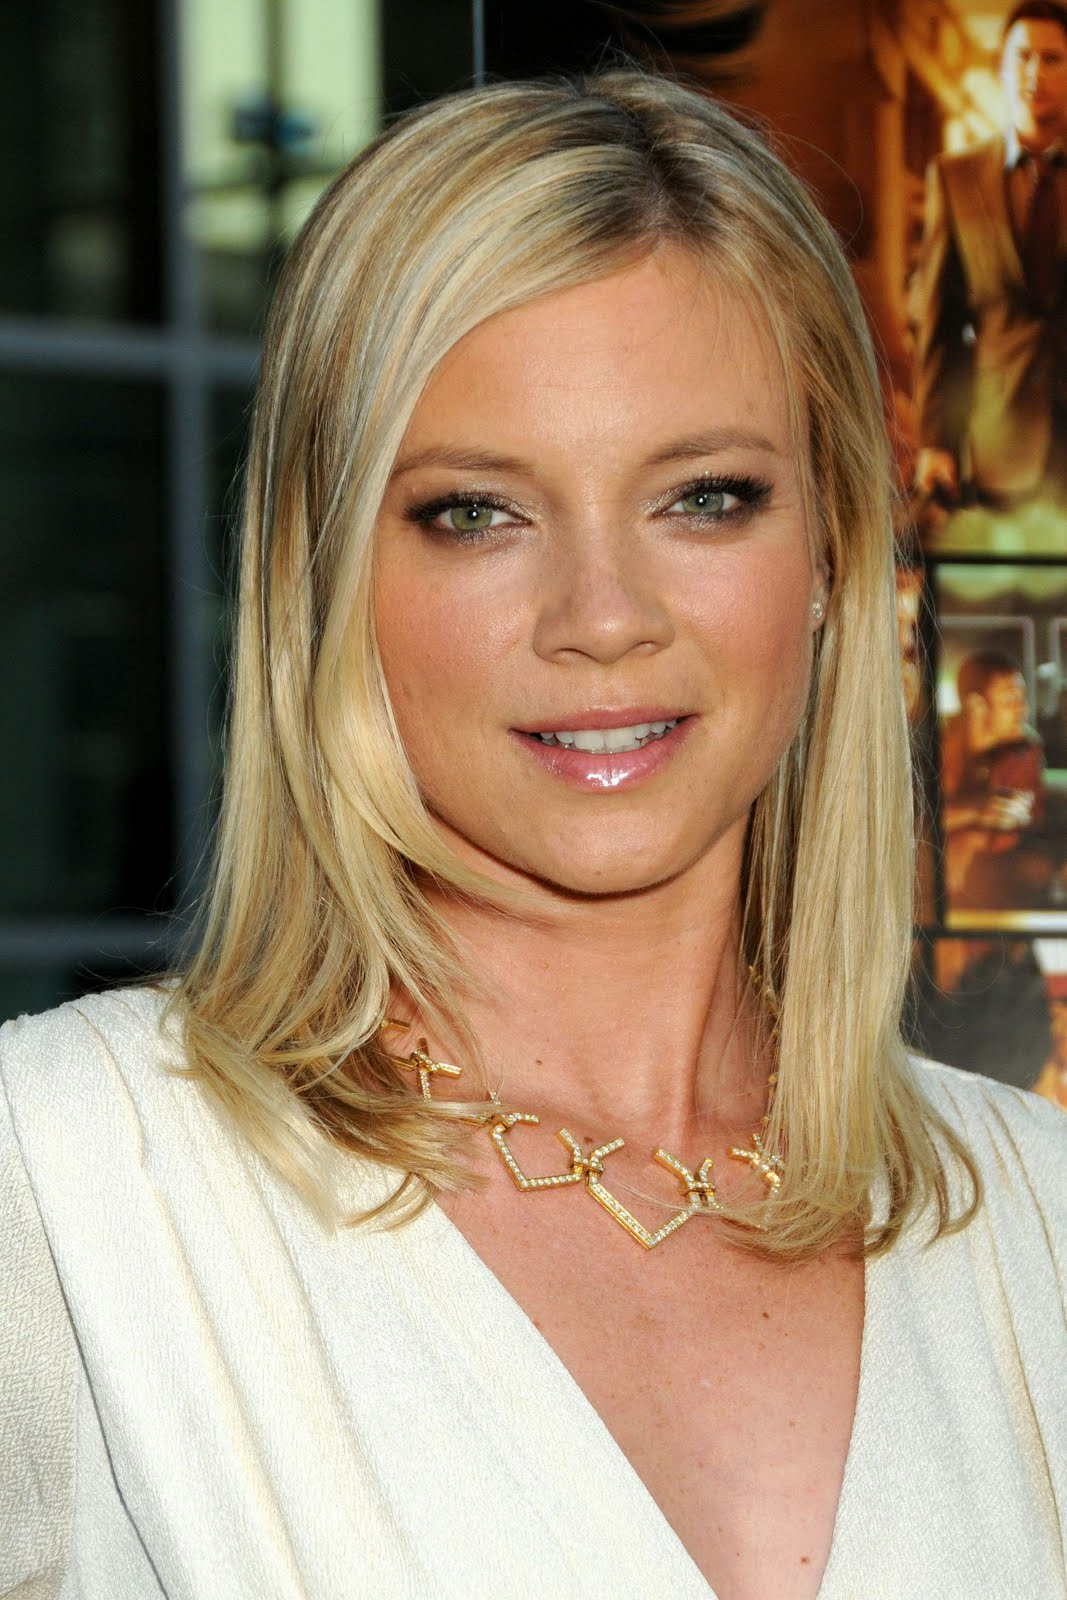 Photo Amy Smart nudes (99 photos), Sexy, Fappening, Selfie, braless 2006